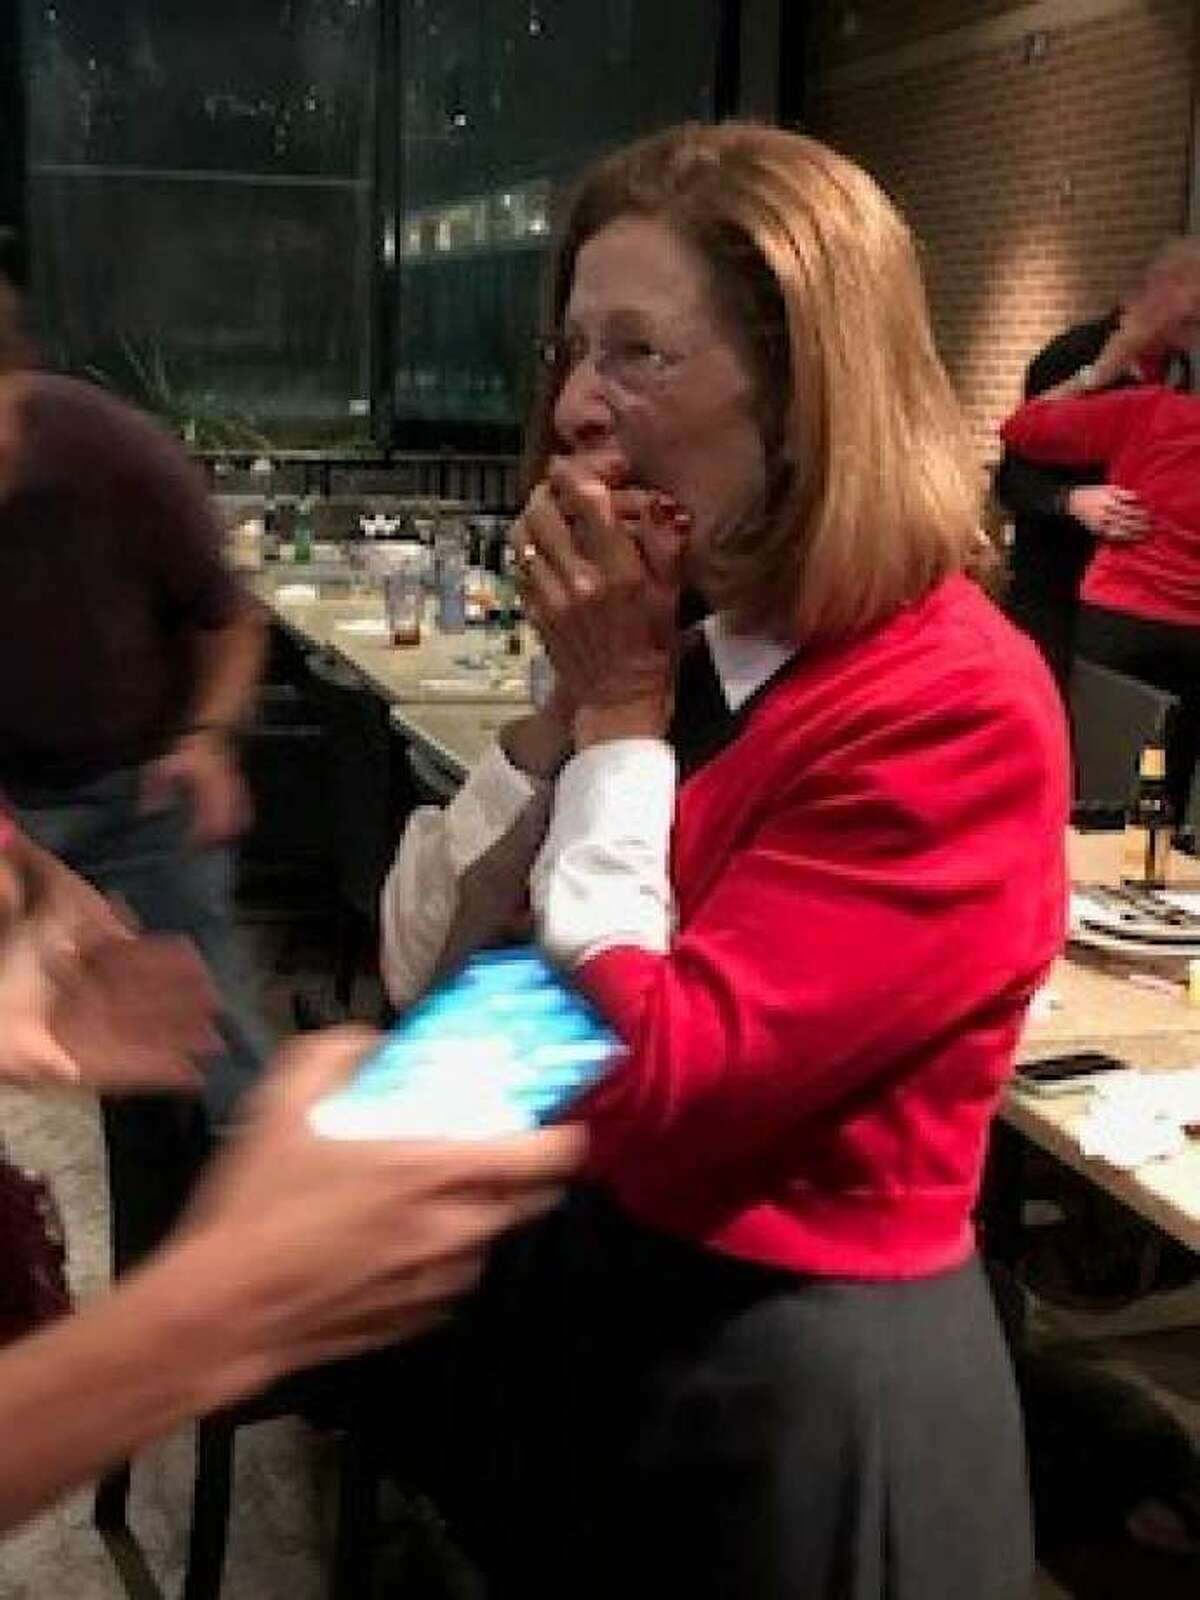 Carol Stromatt reacts on Nov. 7 after learning she had won the election for the Position 7 seat on The Woodlands Township Board of Directors. Stromatt defeated one-term incumbent Laura Fillault.